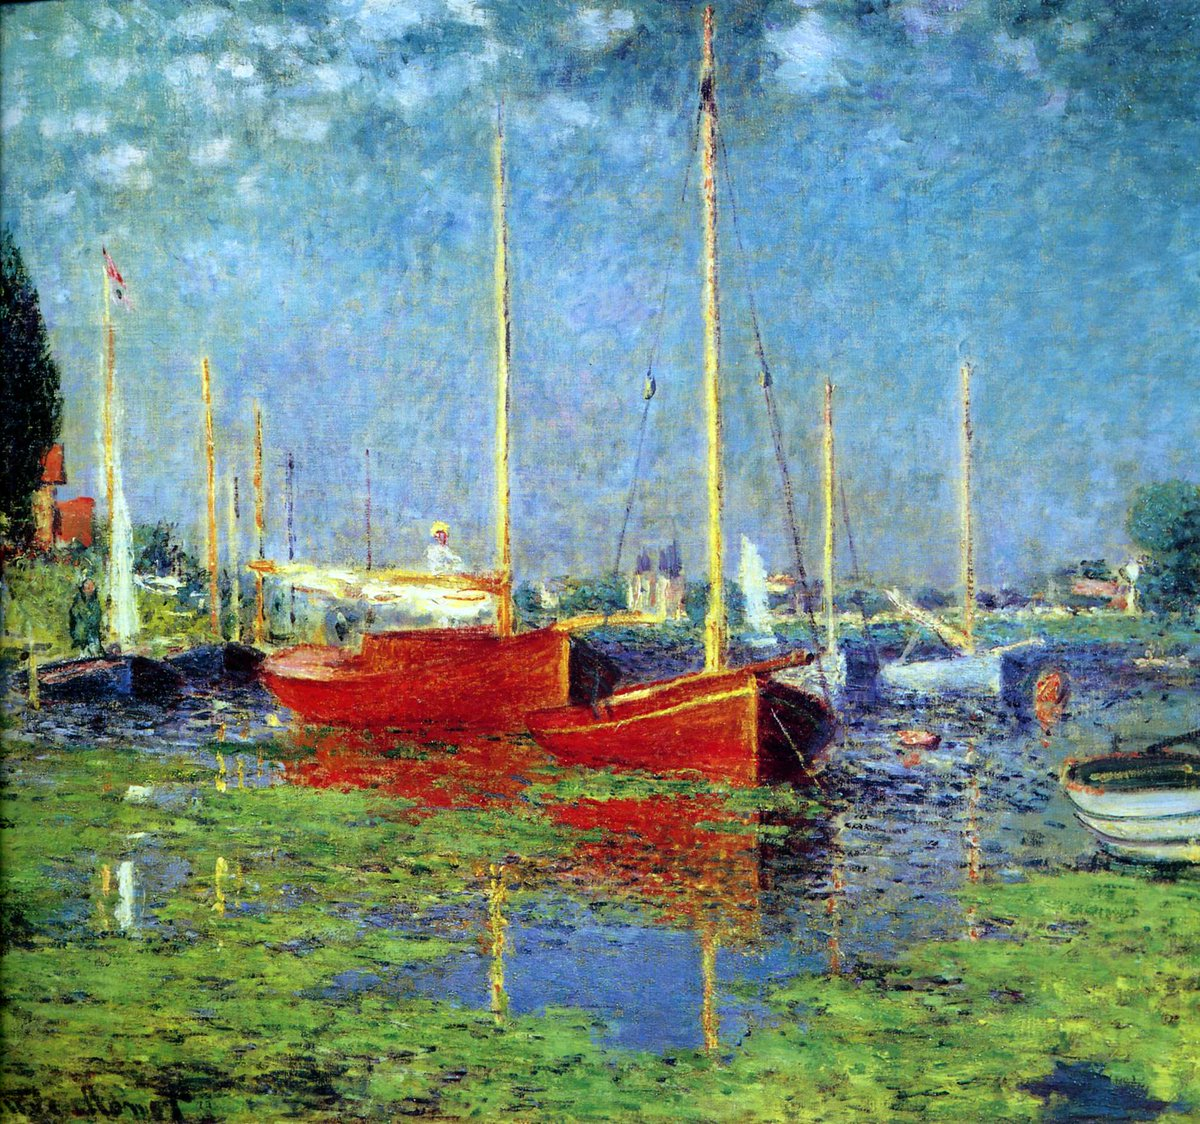 ~Argenteuil,1875~#ClaudeMonet #Awesome #Art #Gallery #MiercolesDeGanarSeguidores #Wednesday #Picture #Impressionism #FelizMiercoles #Amazing<br>http://pic.twitter.com/IsE3HuRDk3